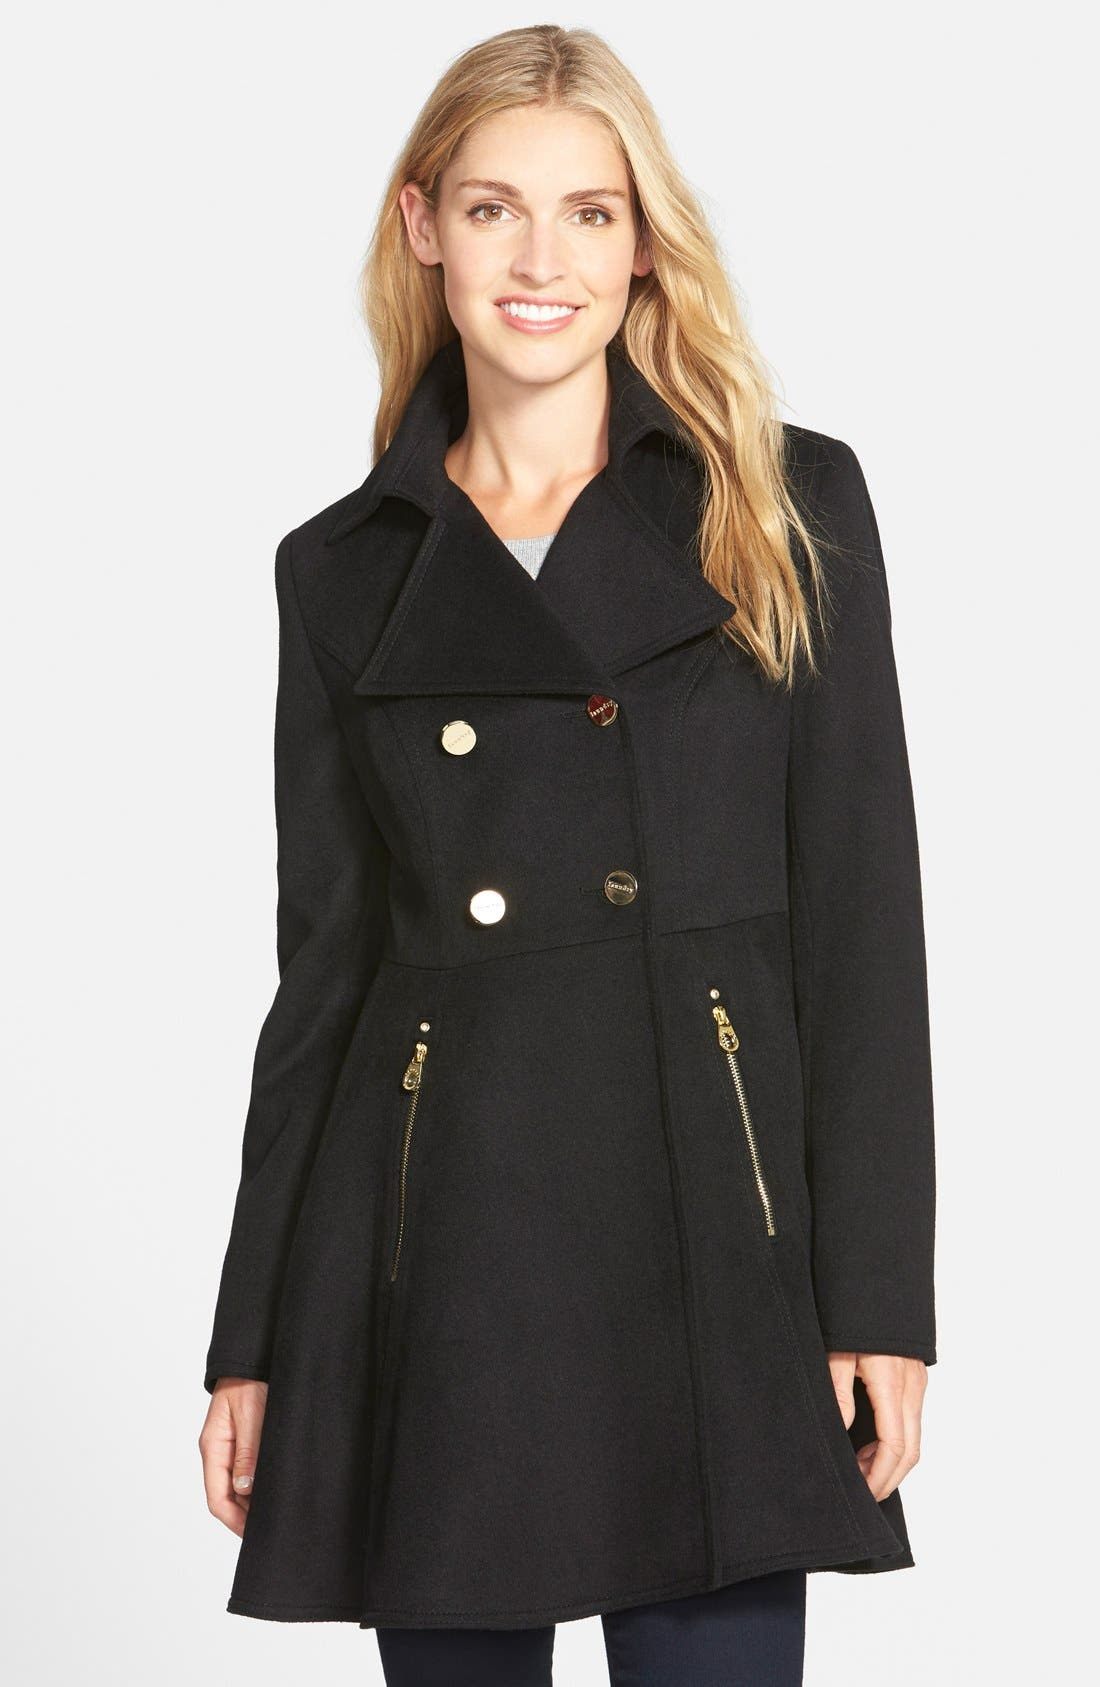 Laundry by Shelli Segal Double Breasted Fit & Flare Coat,                             Main thumbnail 1, color,                             Black